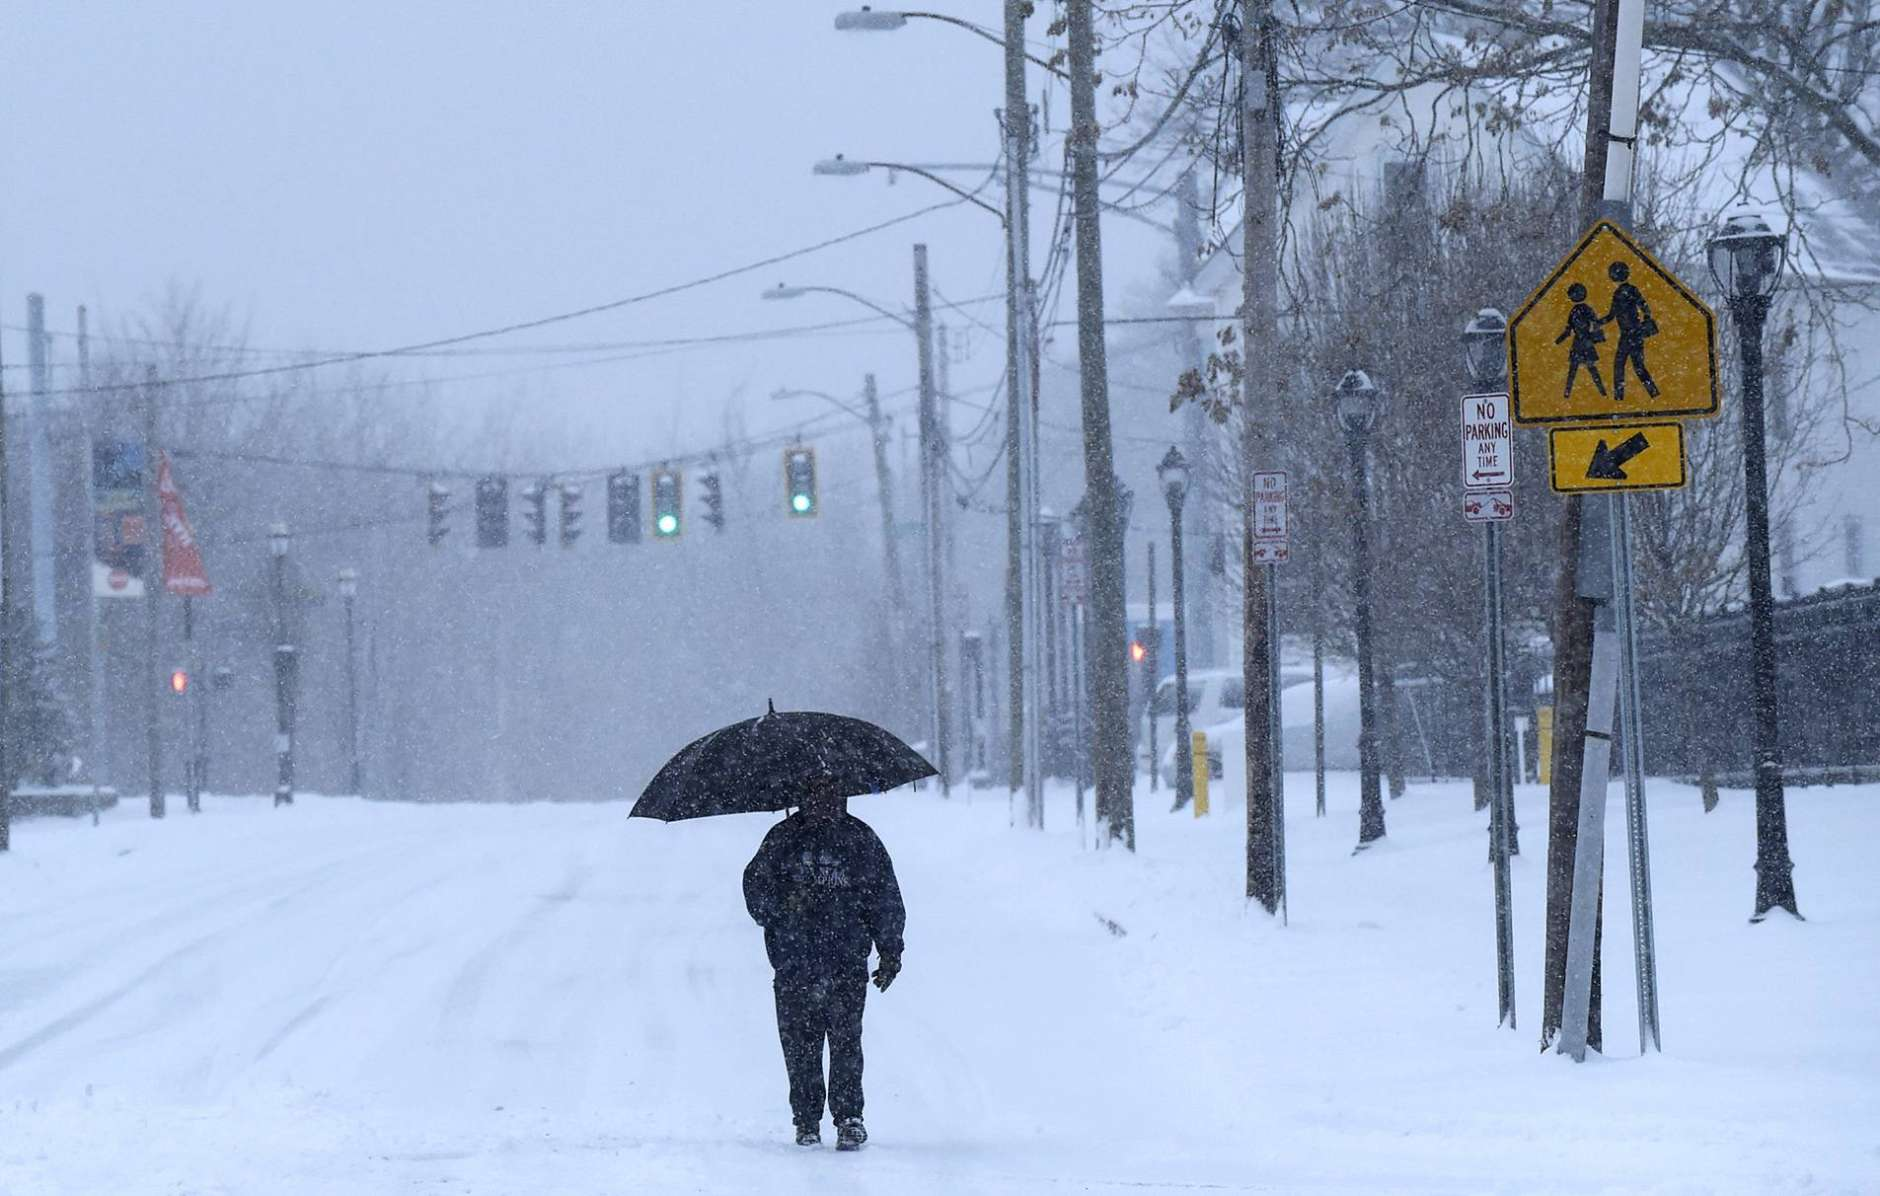 Gerald Maurice trudges along Hawthorn Street as snow falls in Hartford, Conn., on Tuesday, March 14, 2017. (Patrick RaycraftHartford Courant via AP)